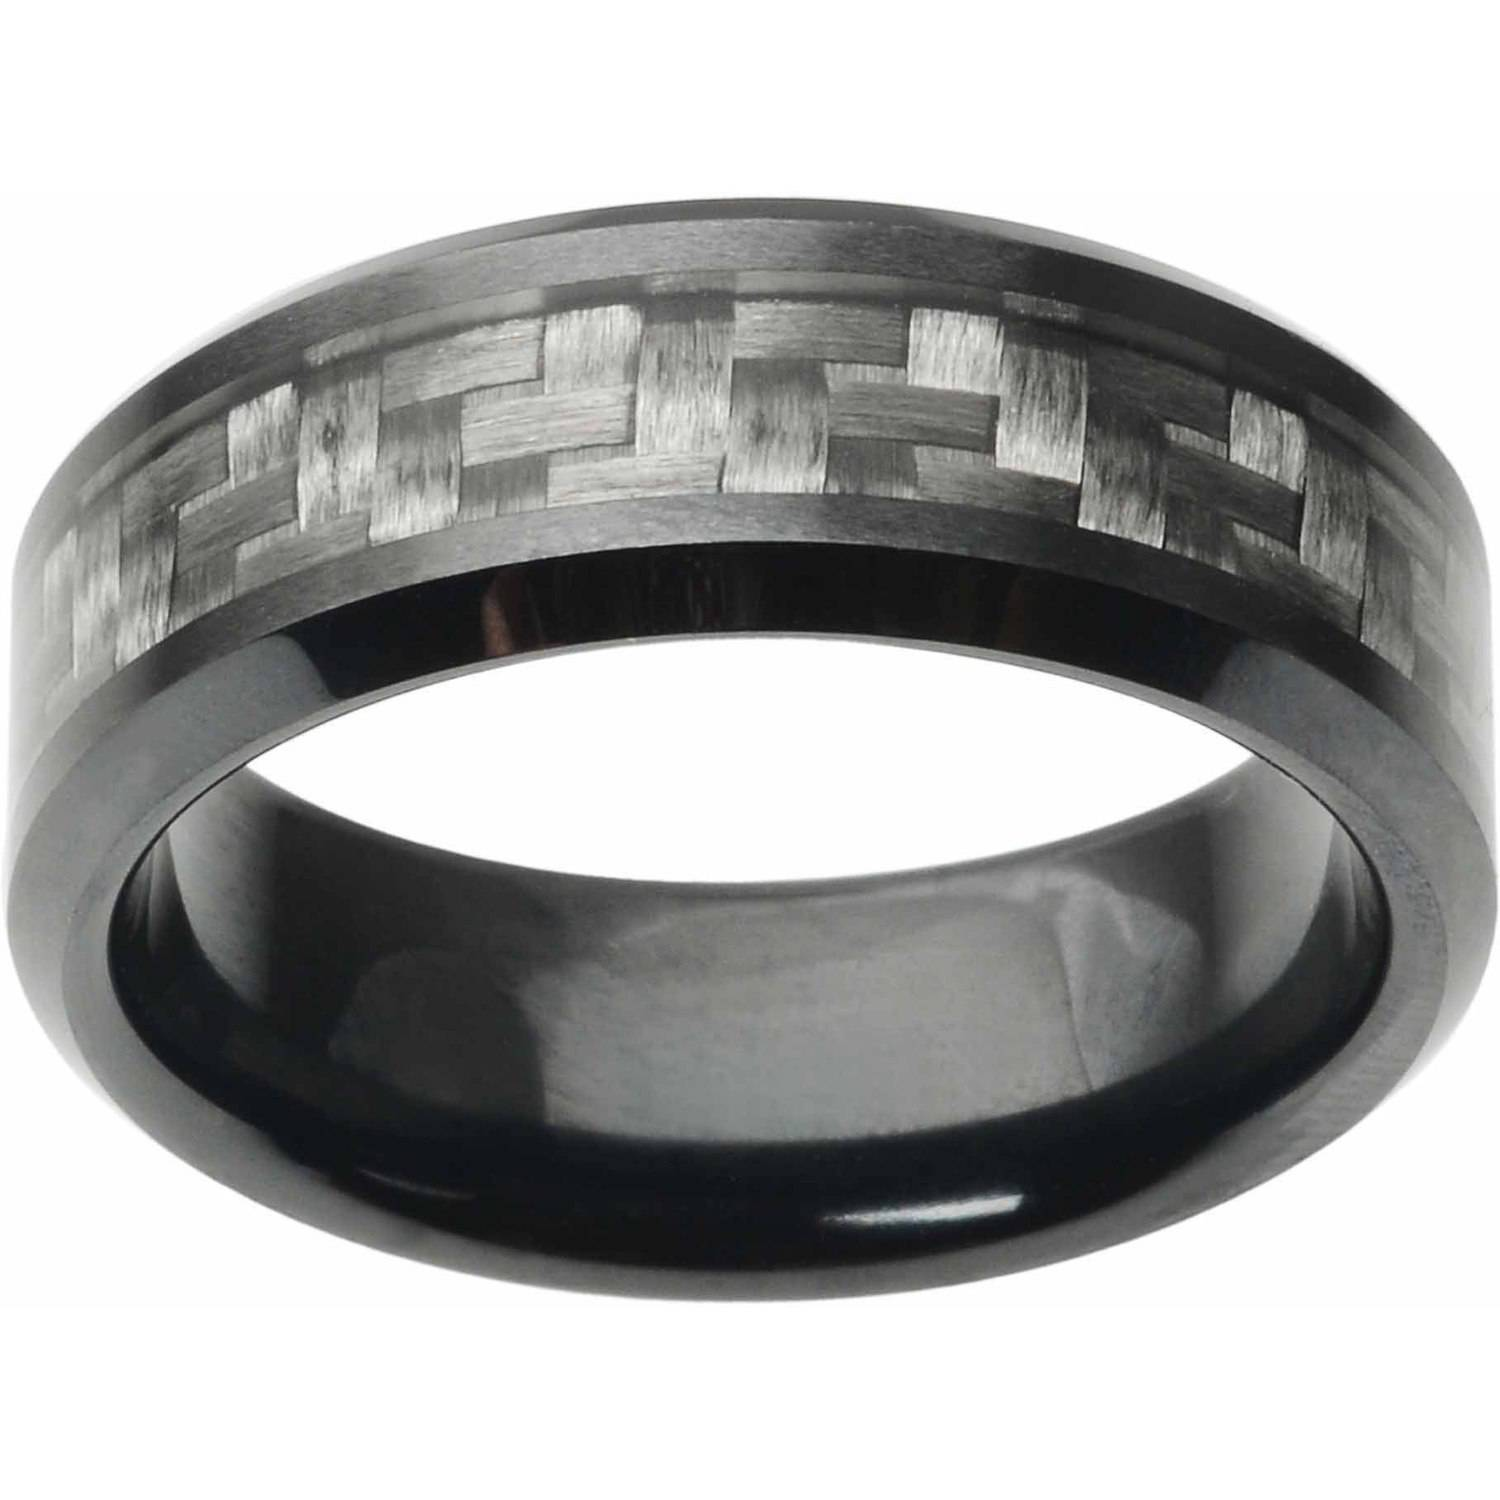 Daxx Men's Ceramic Carbon Fiber Inlay Band, 8mm